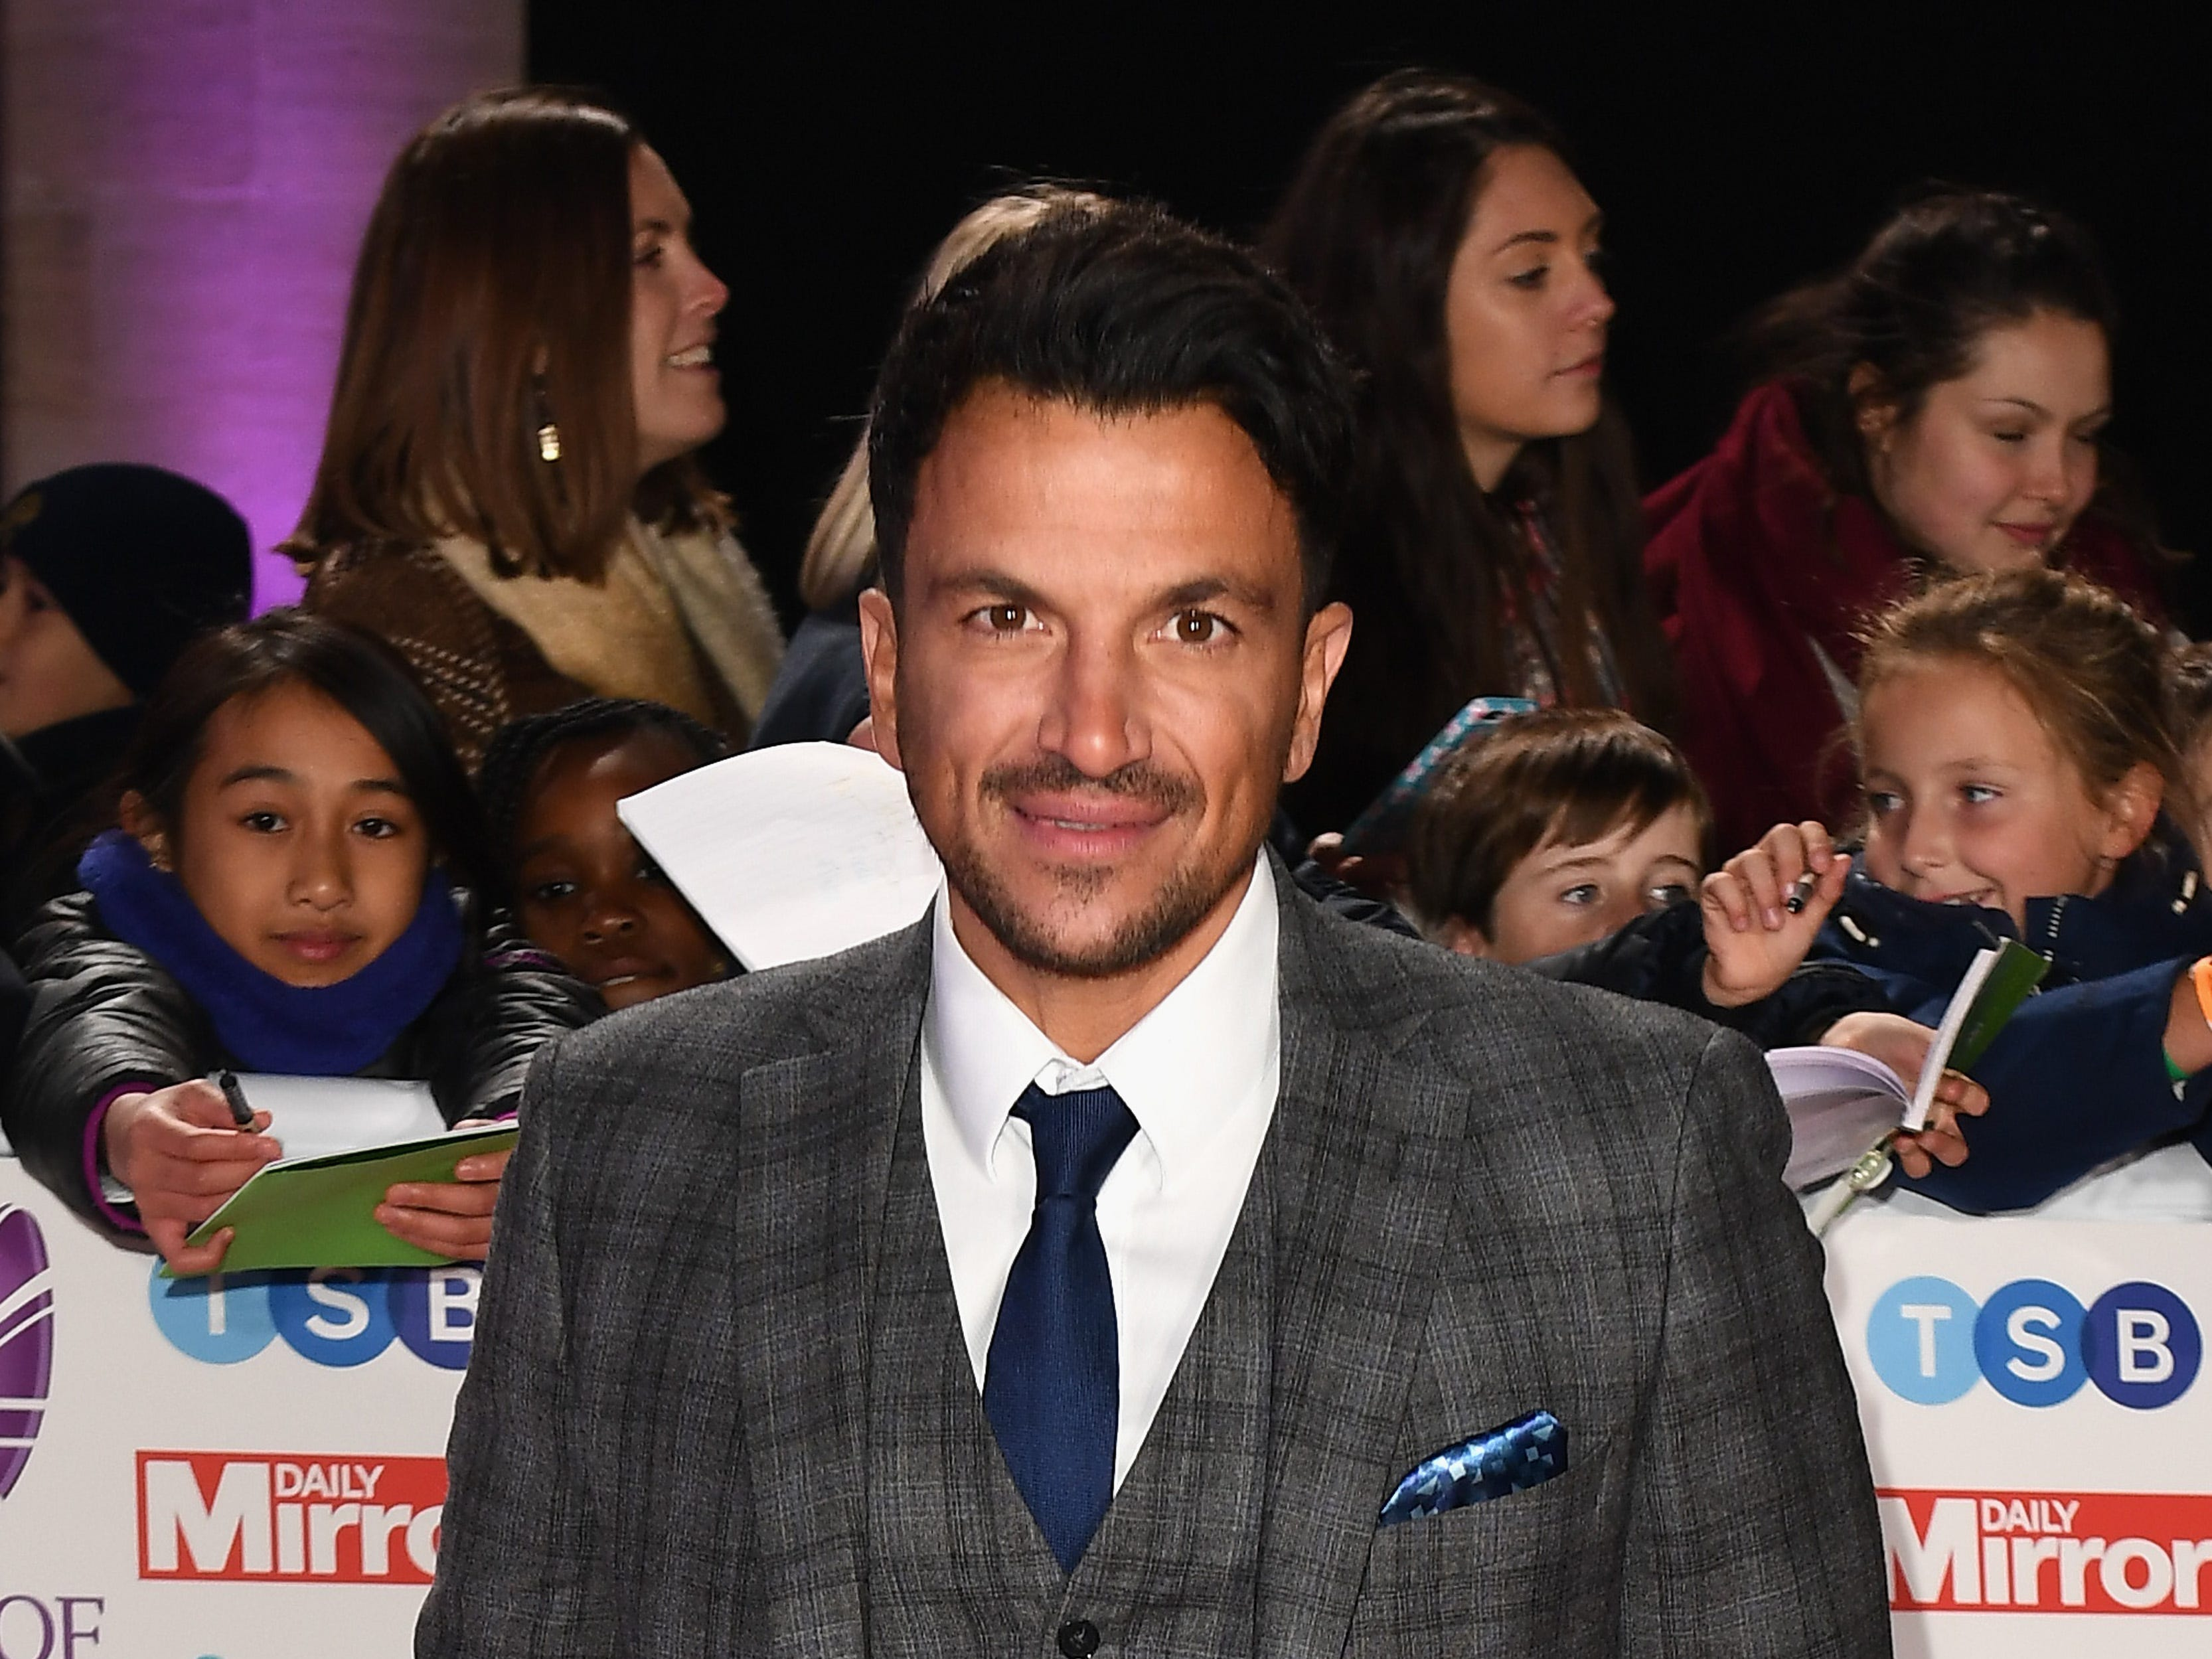 Peter Andre attends the Pride of Britain Awards 2018 on Oct. 29, 2018 in London.